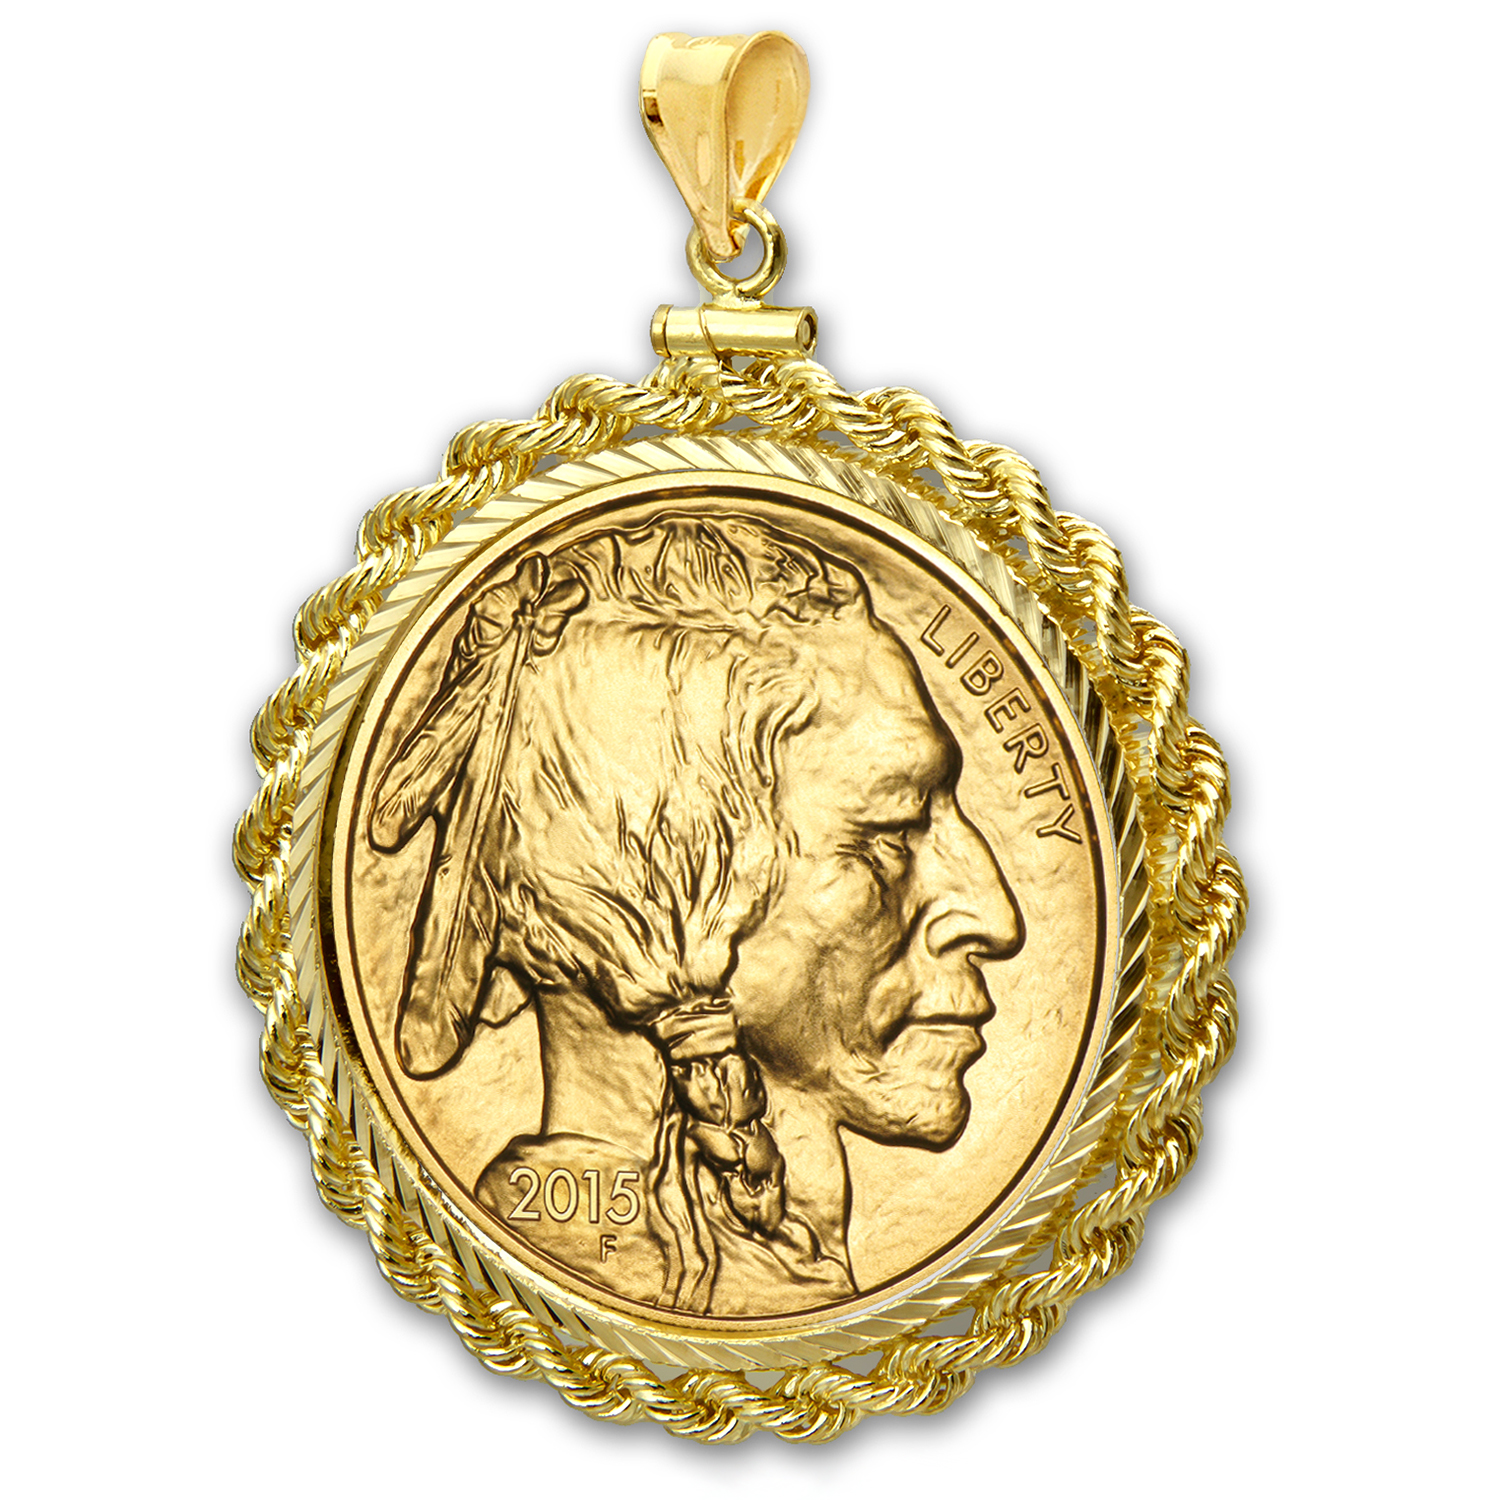 2015 1 oz Gold Buffalo Pendant (Rope-Diamond Cut Screw-top Bezel)